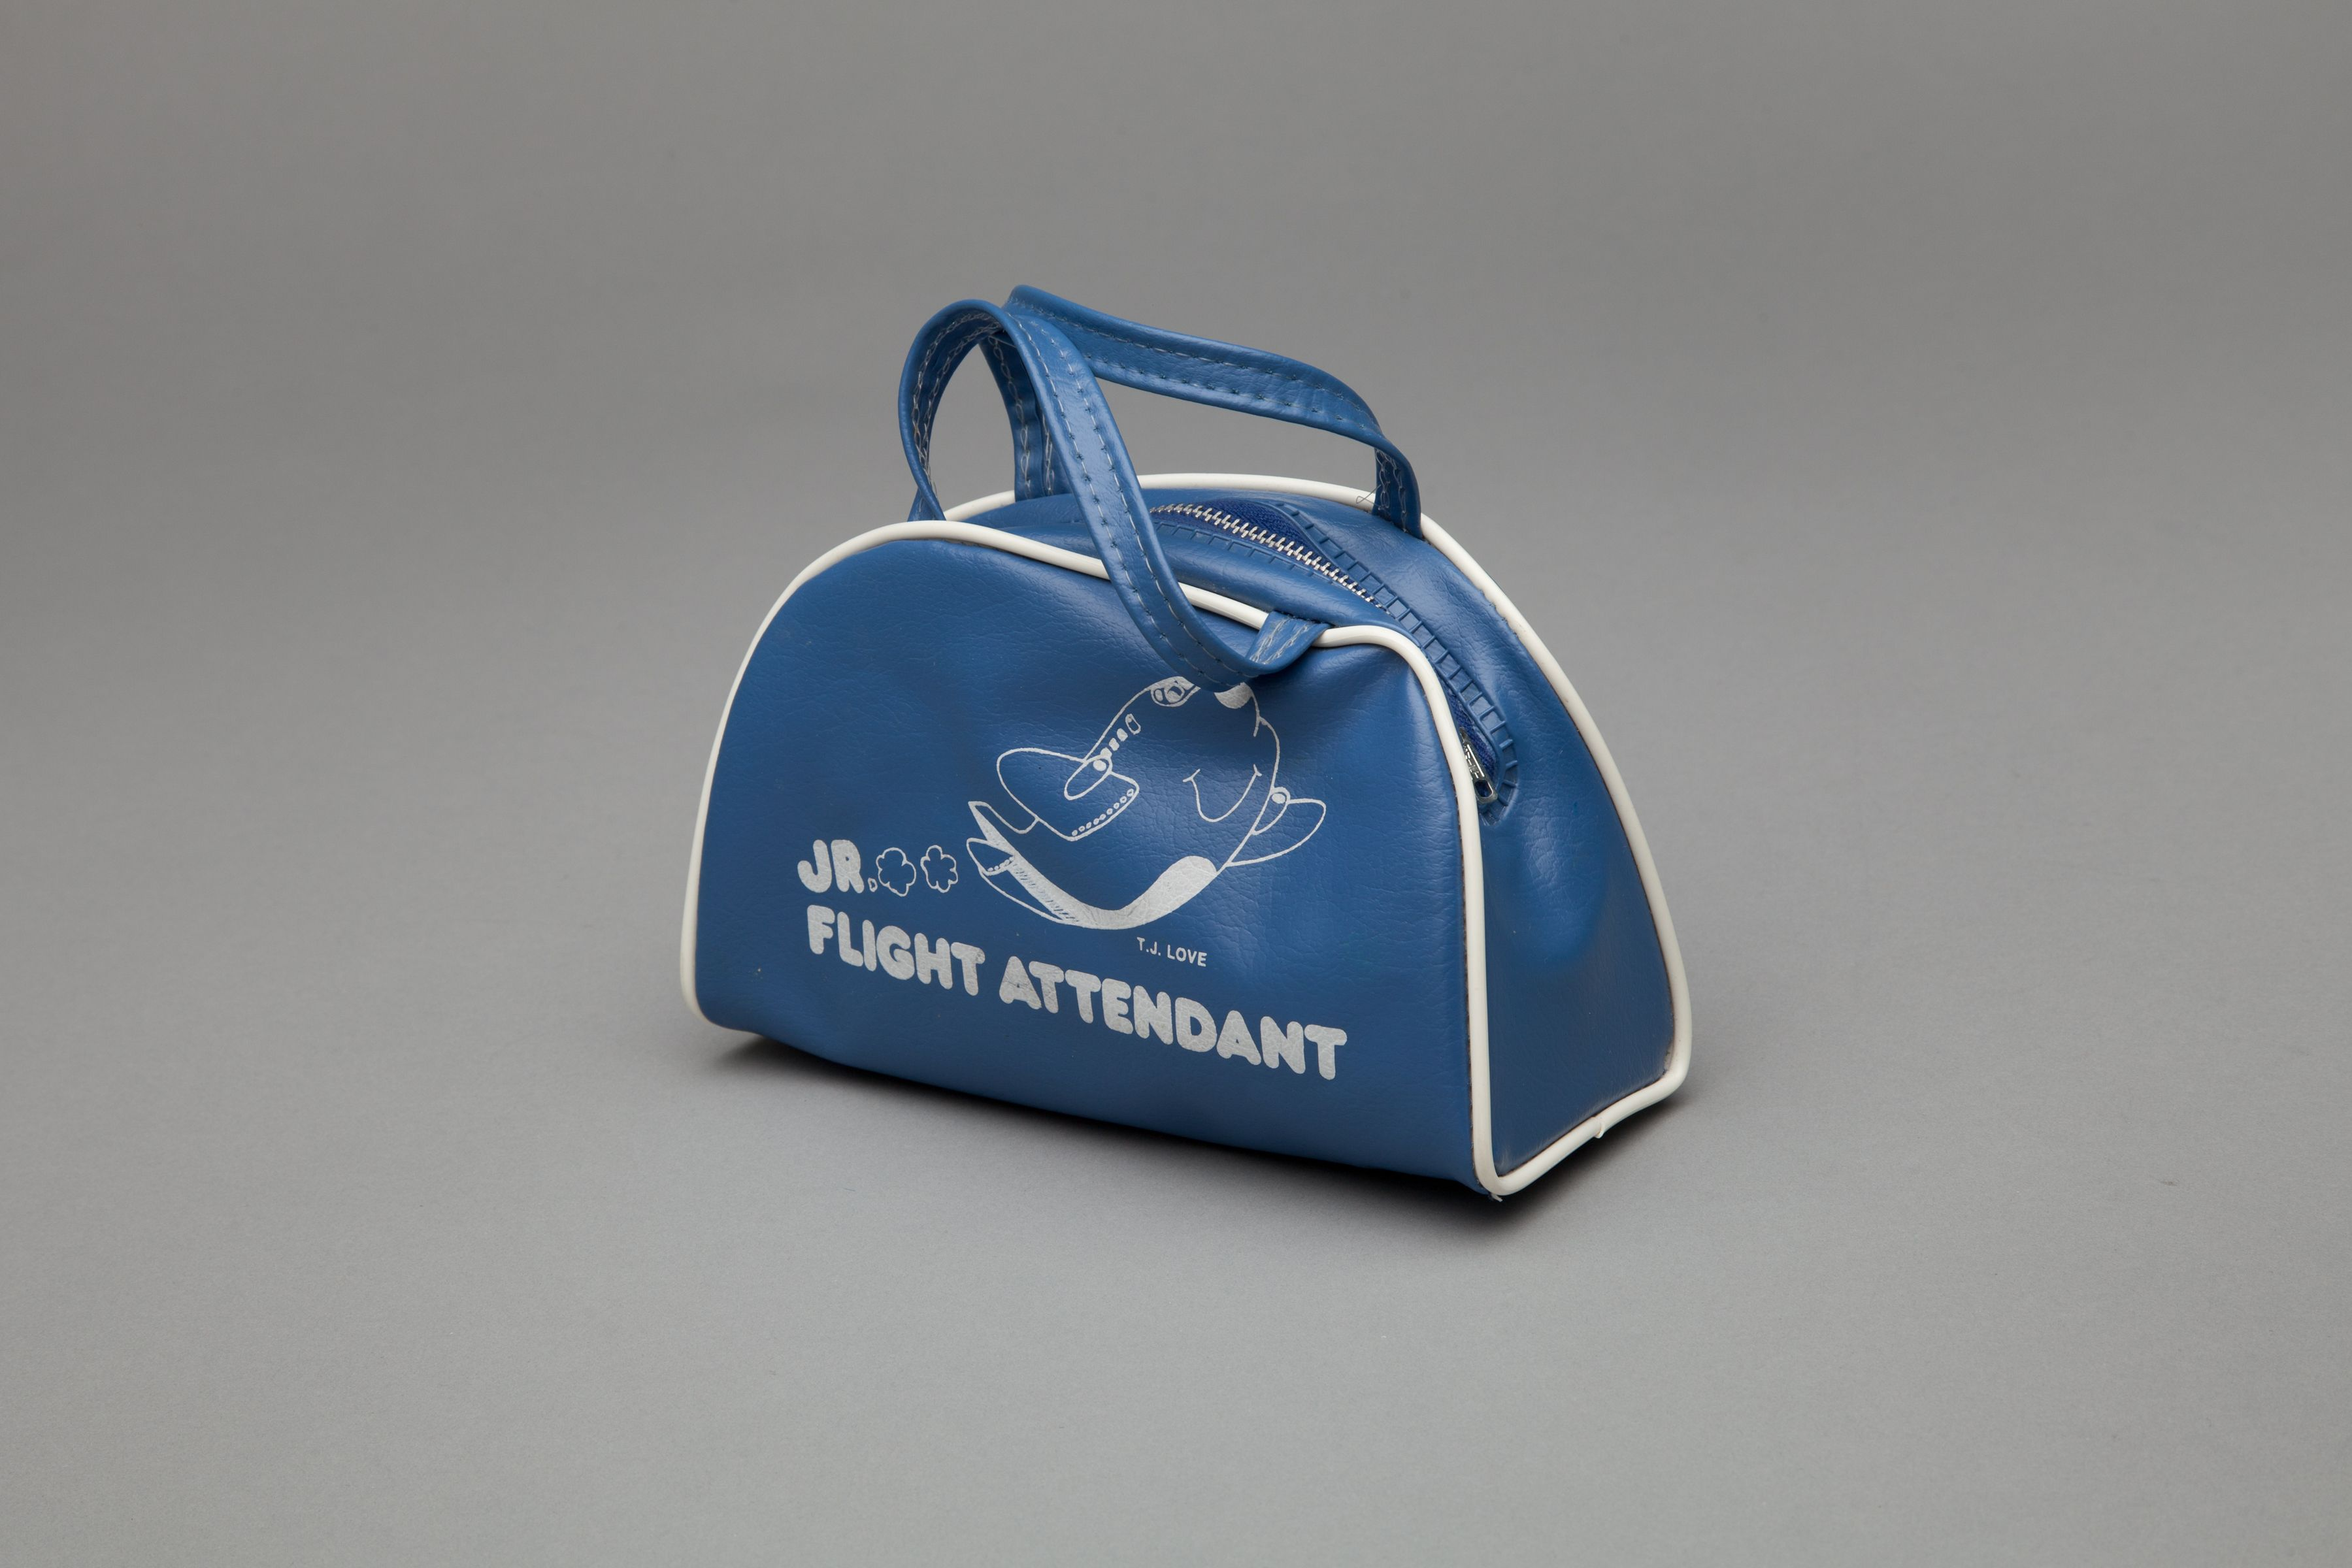 miniature airline bag Southwest Airlines http//www